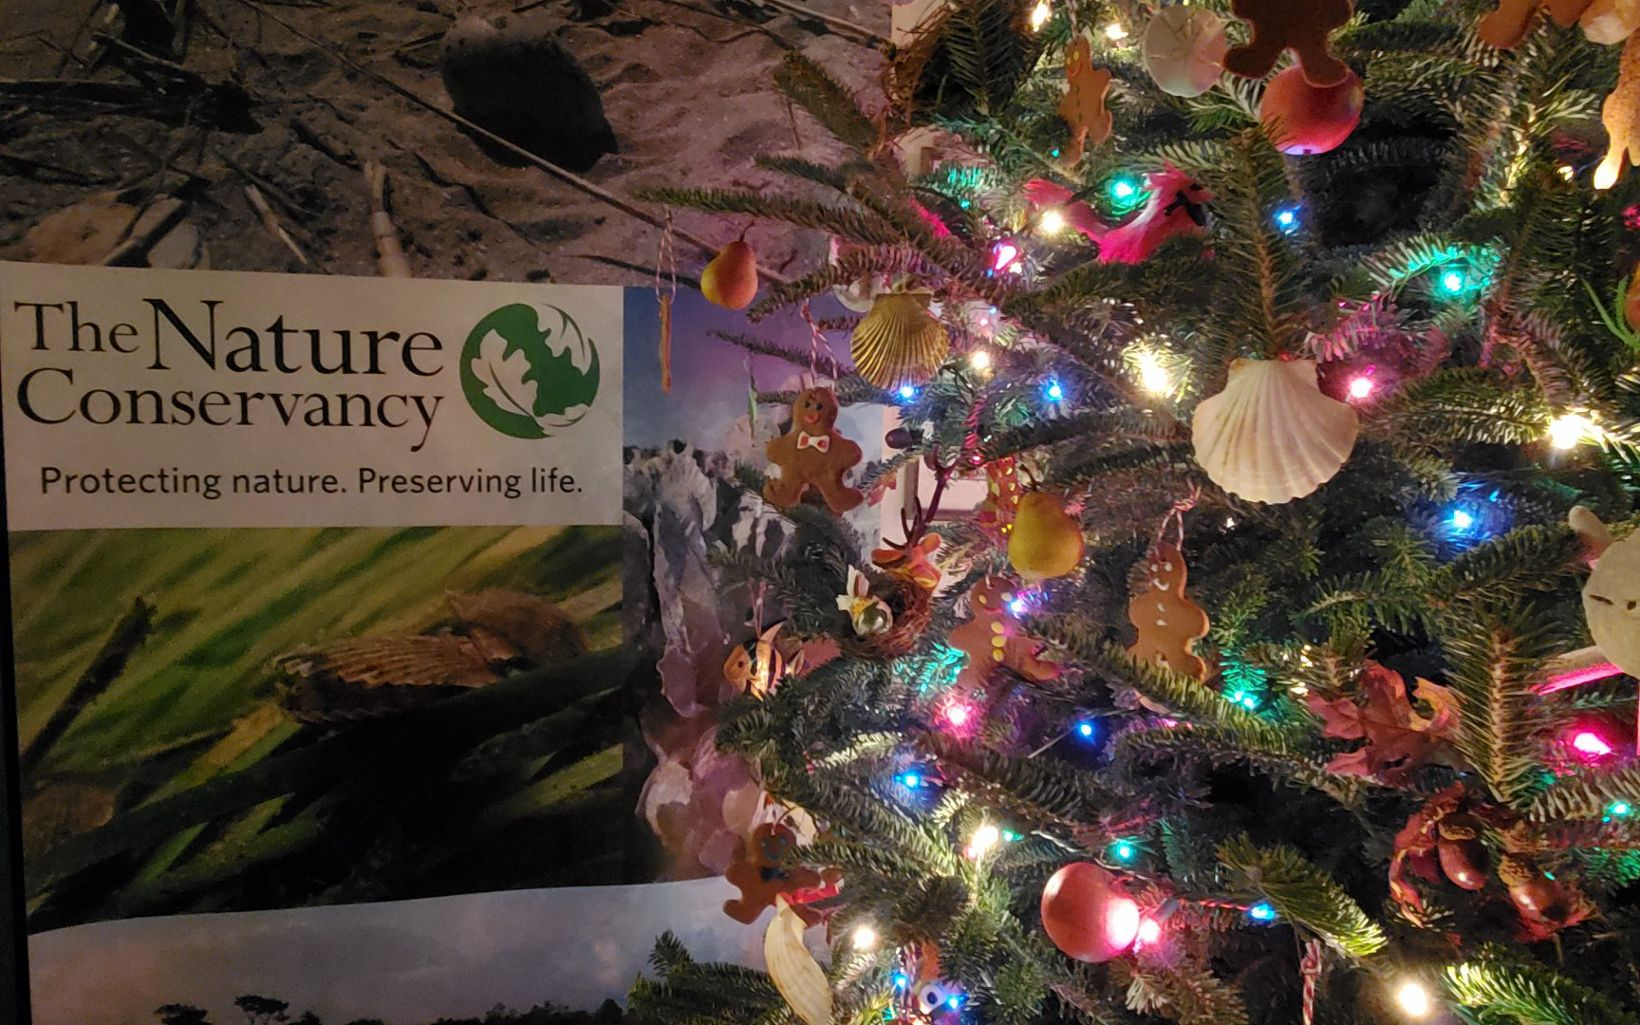 Holiday tree decorated with shells and gingerbread cookies next to a poster with The Nature Conservancy's logo on it.